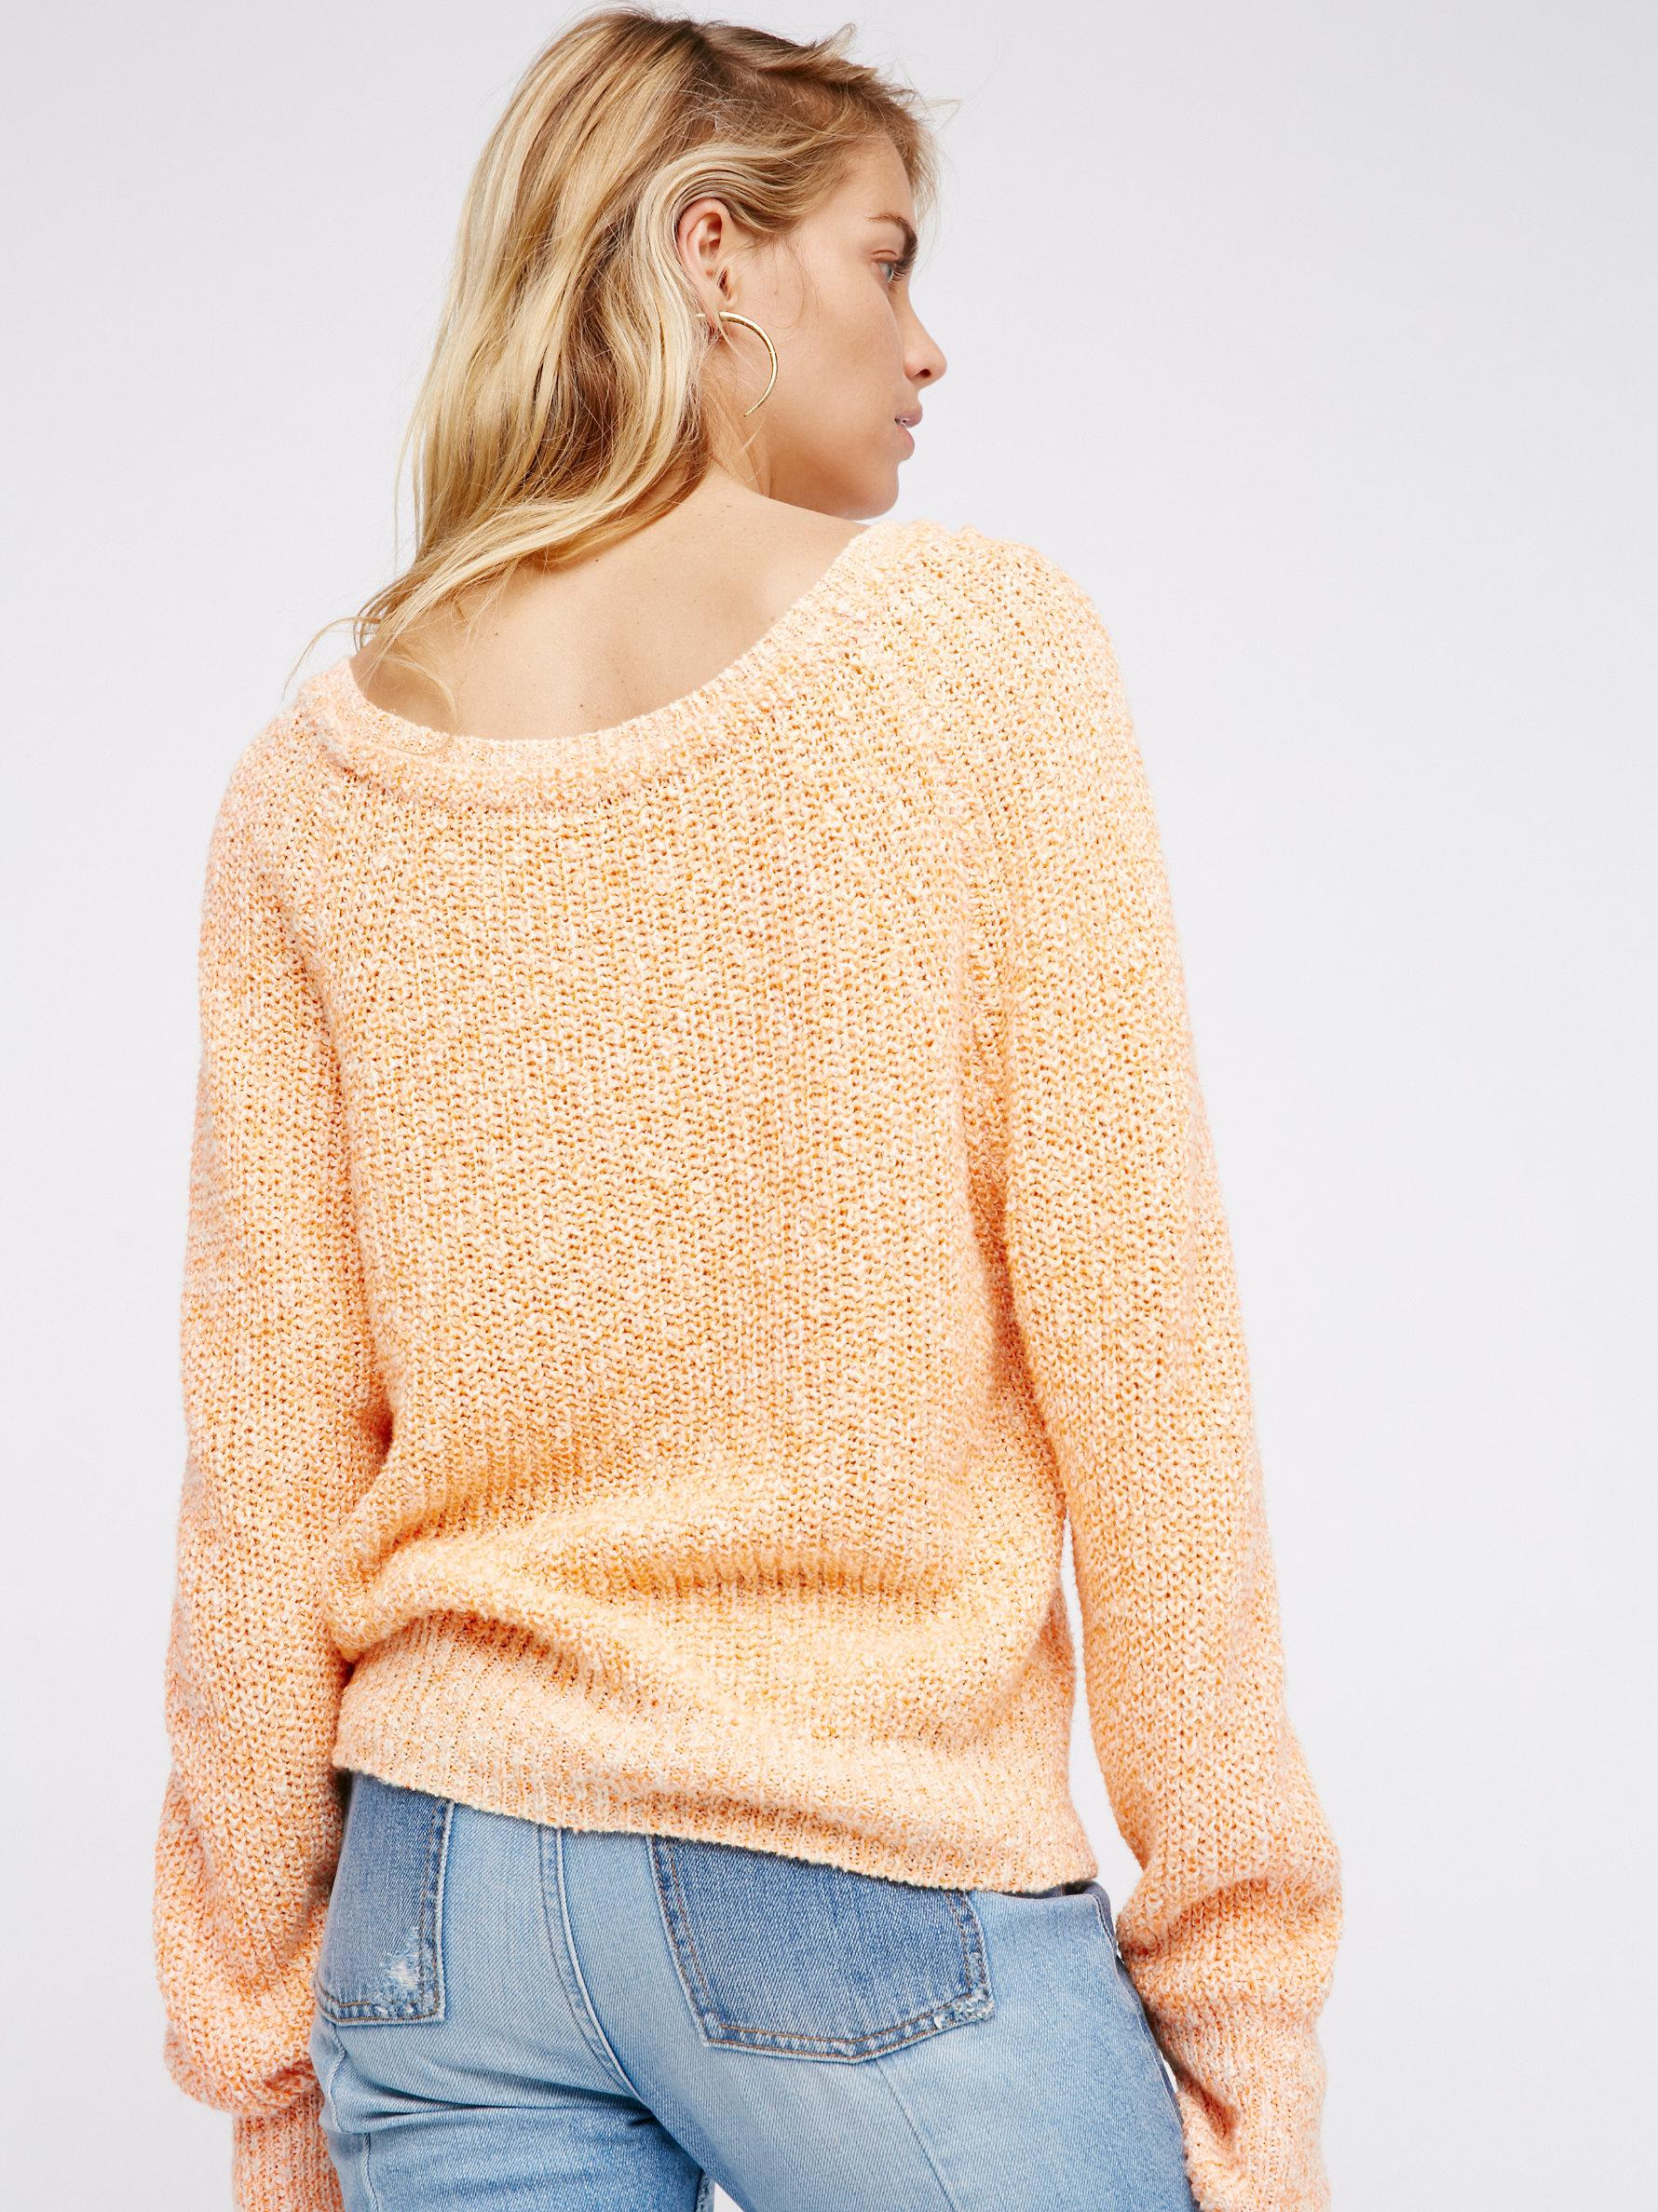 Free People Cotton Electric City Pullover